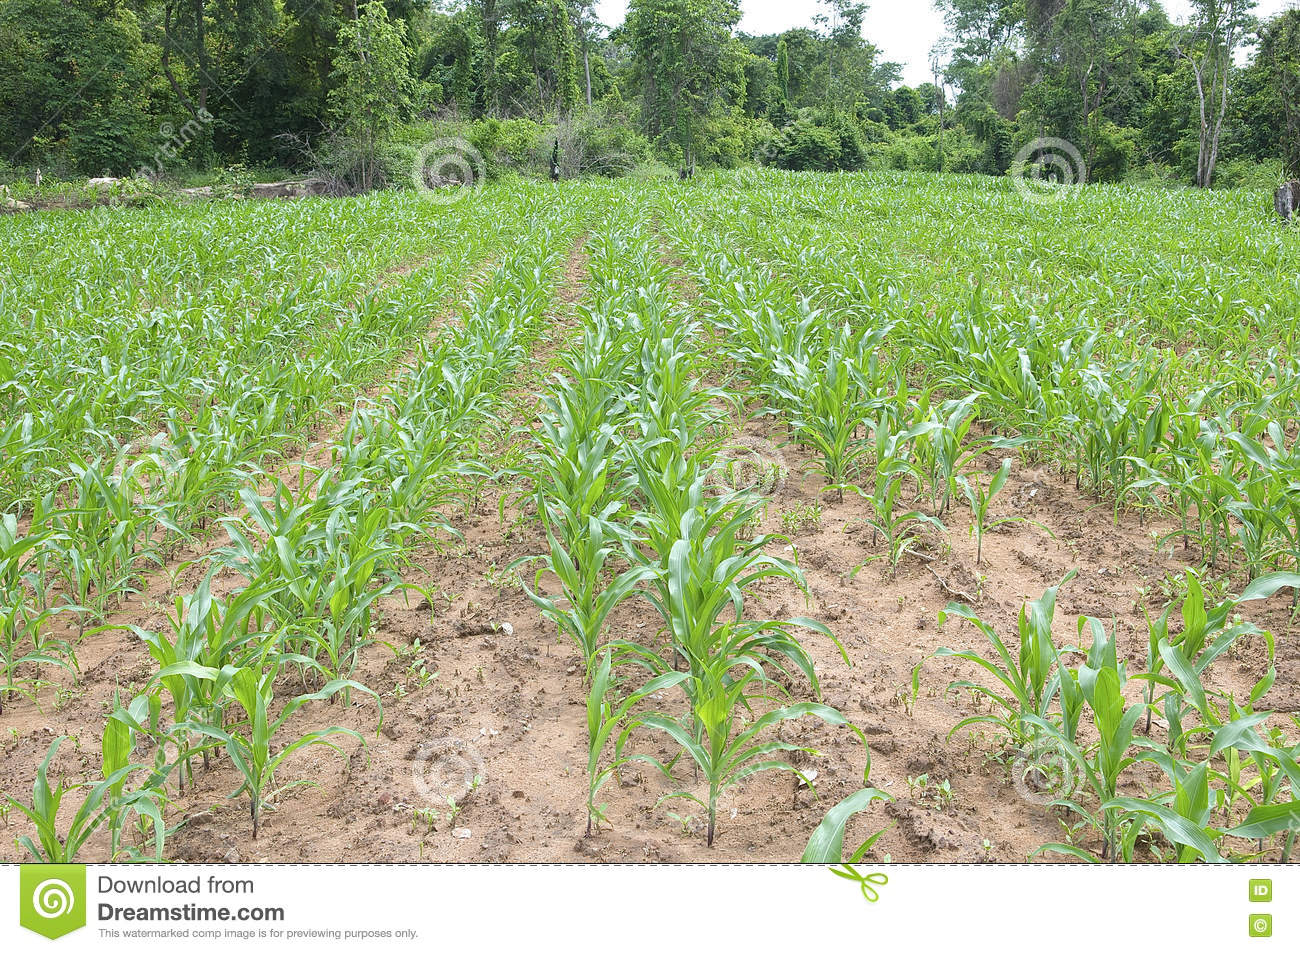 Monocroping With Field Of Young Maize Stock Photo - Image of field